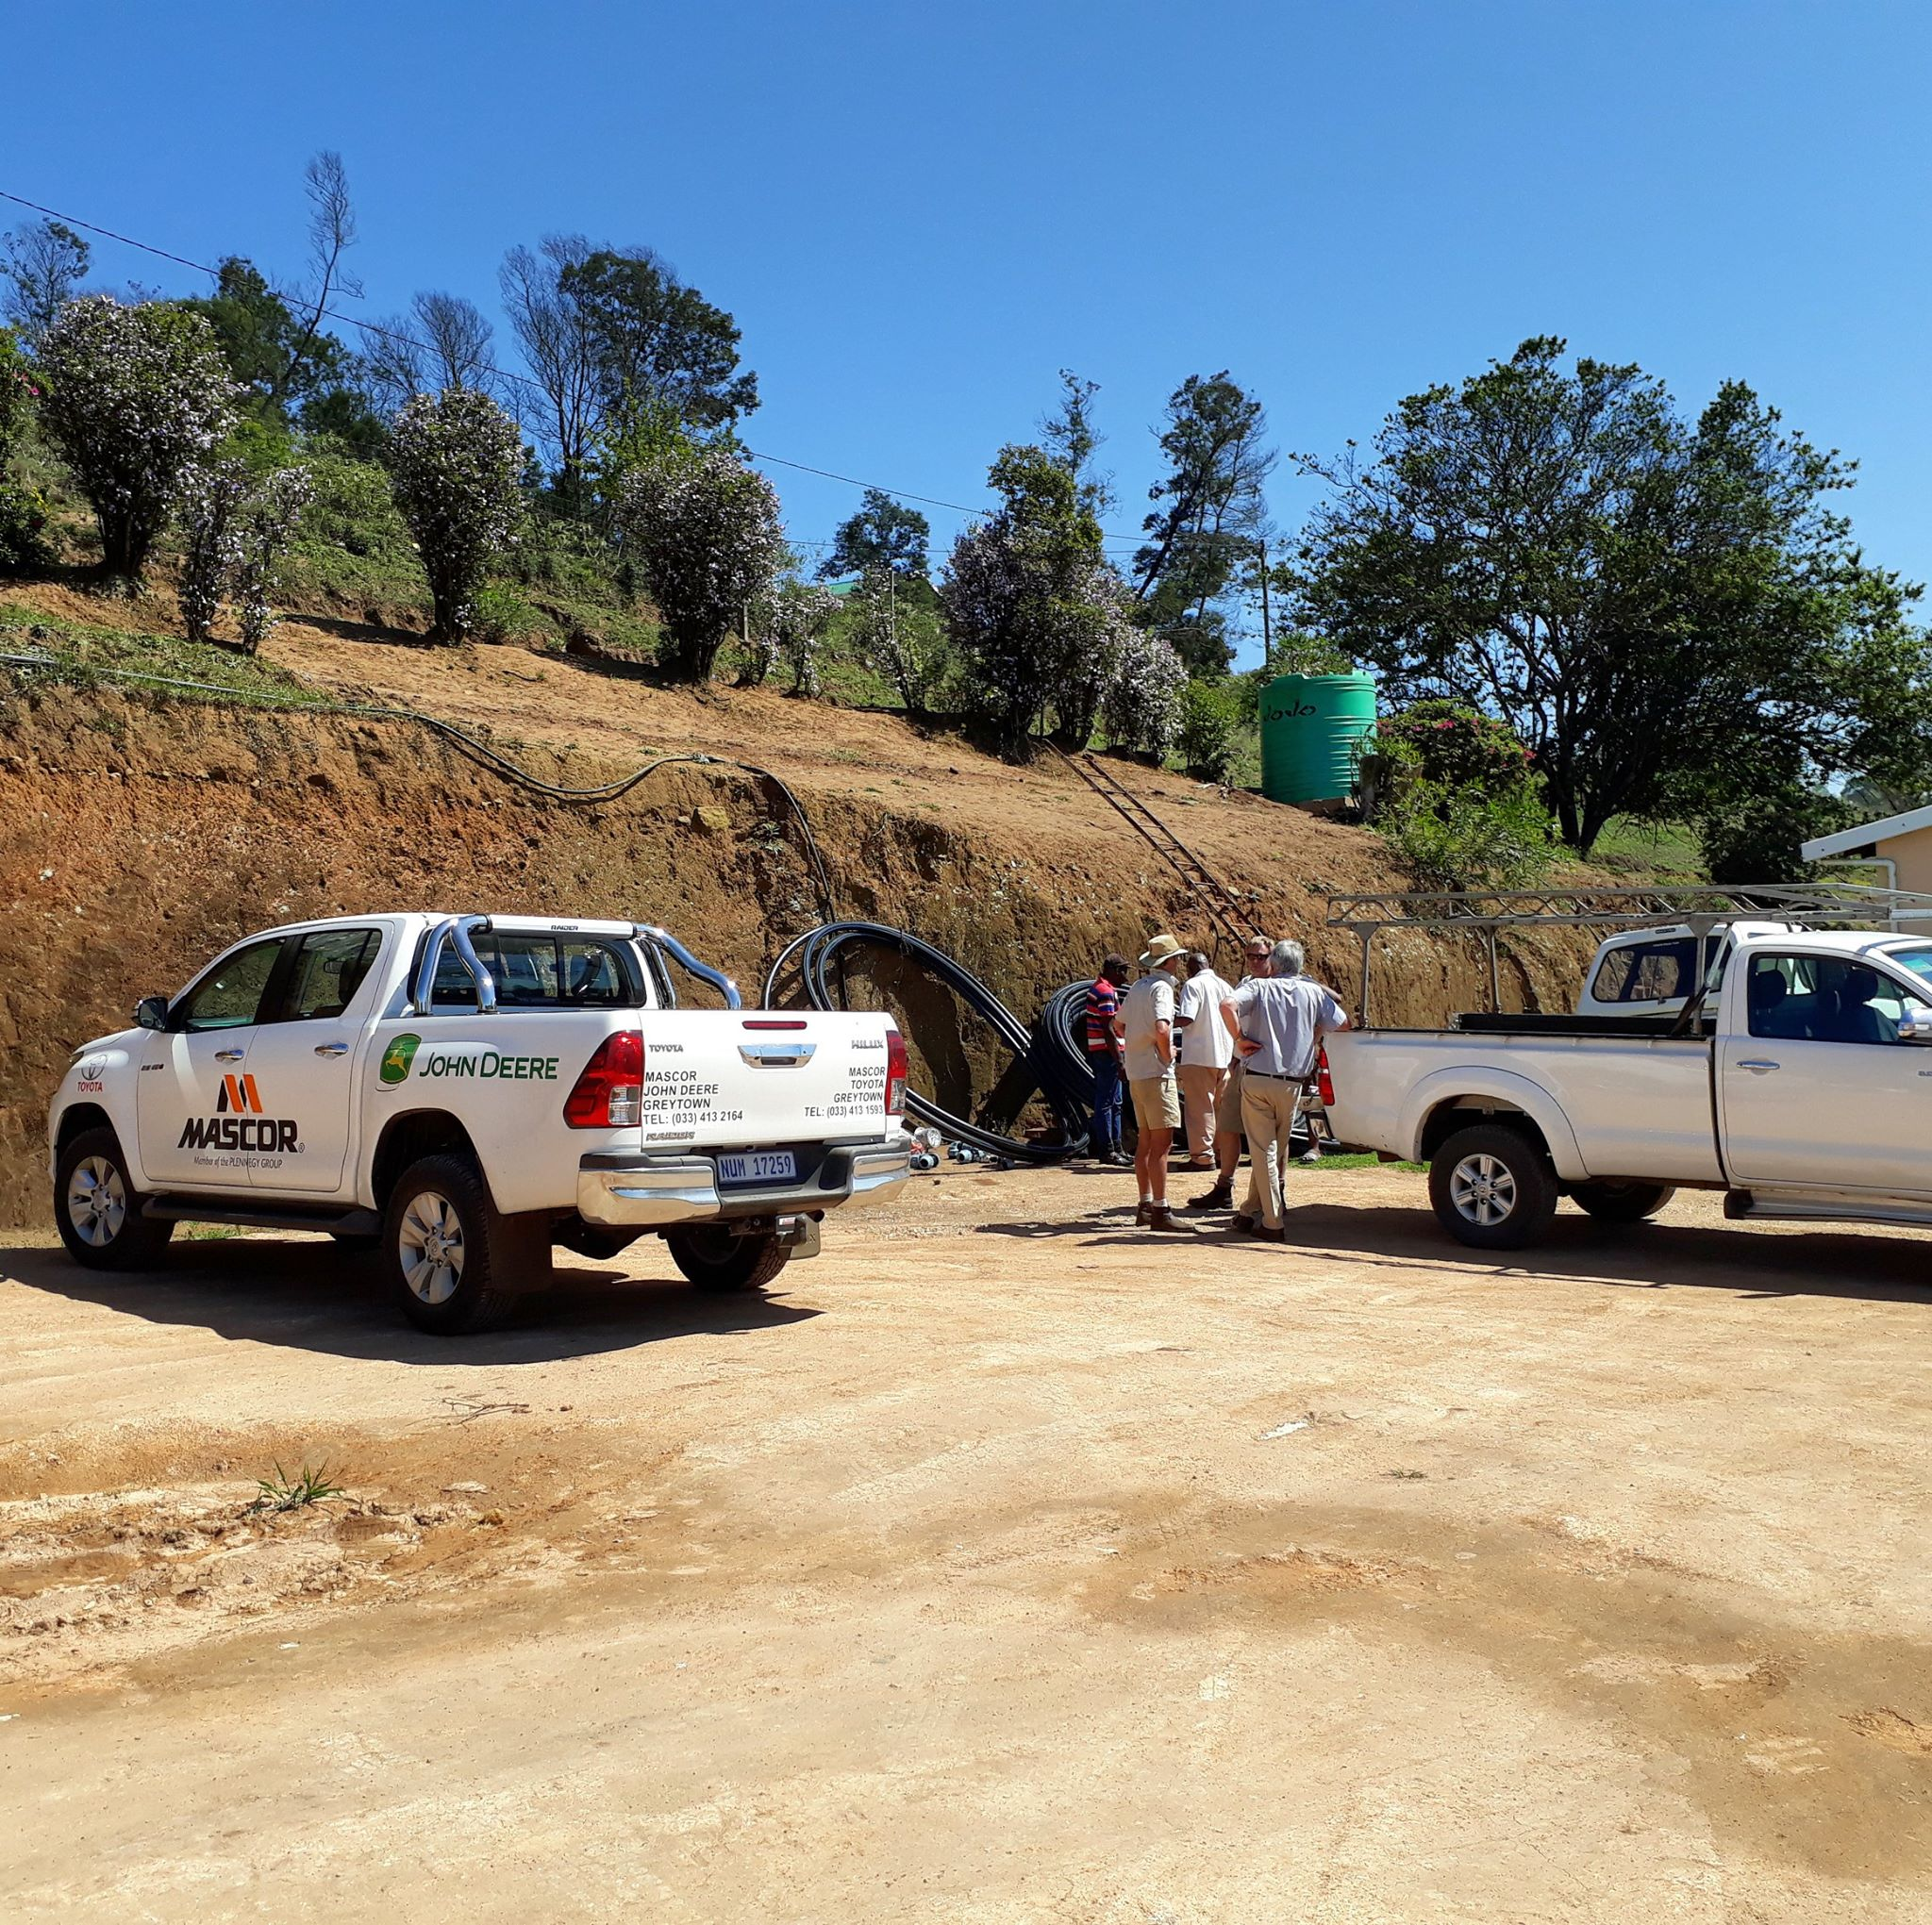 The fantastic Toyota Hilux, kindly sponsored by  #Mascor , being put to good use on site in Hlutankungu, Highflats.